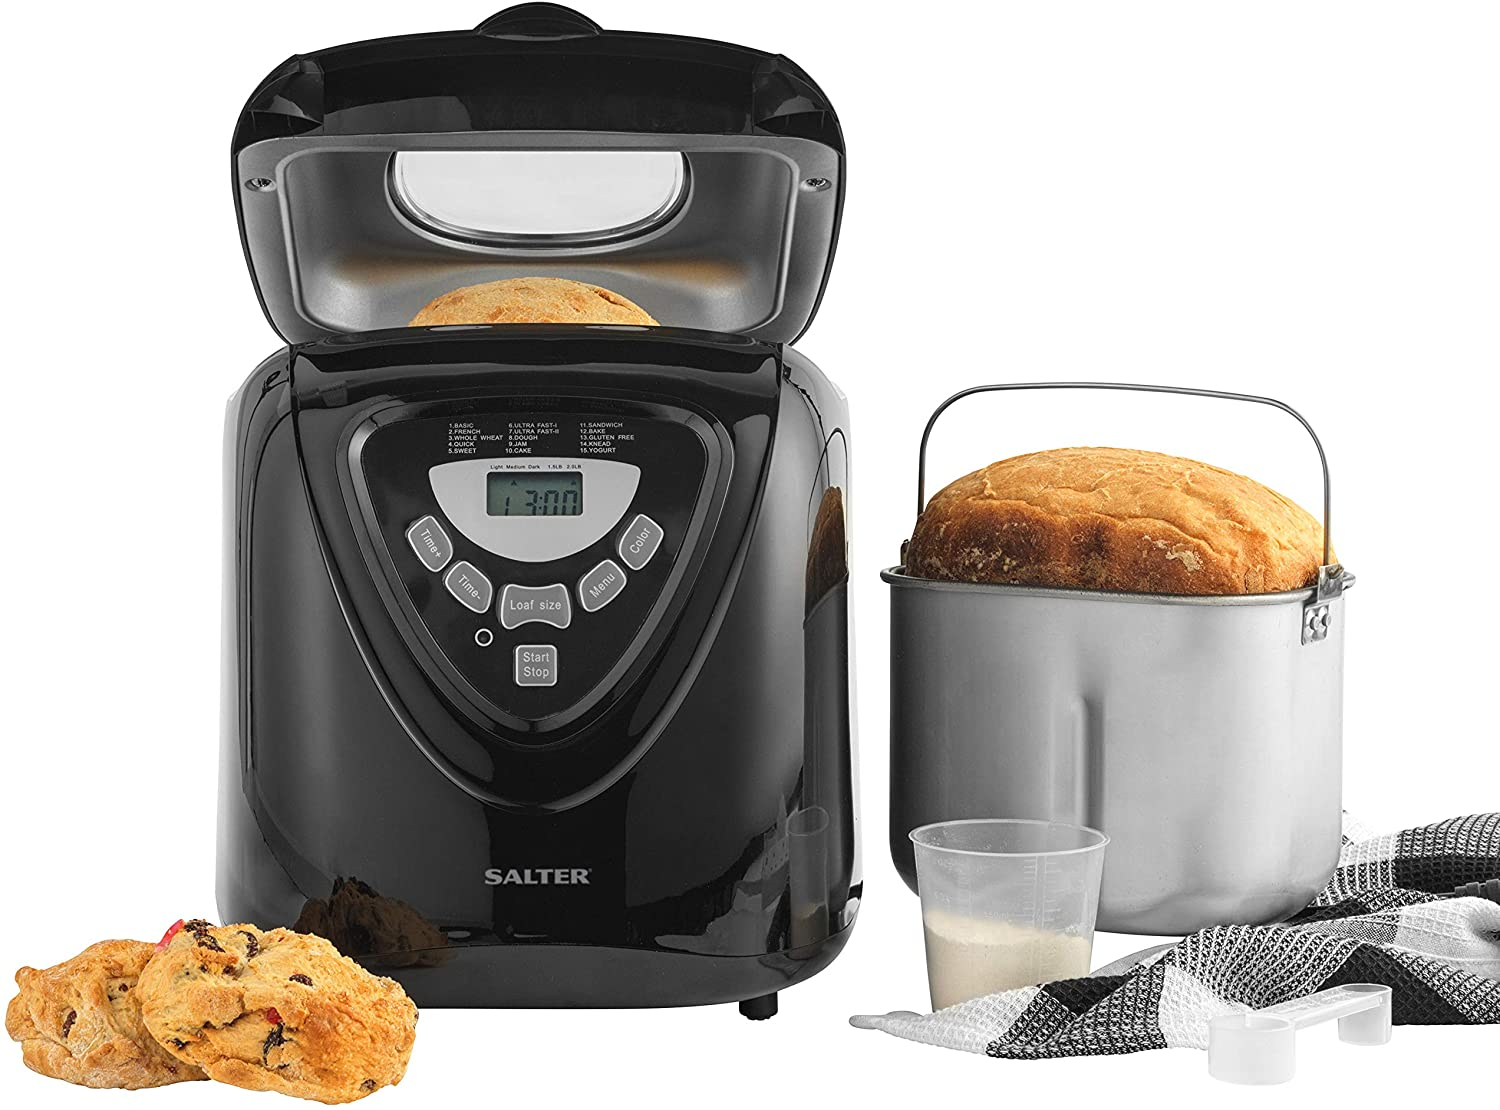 This salter digital bread maker has been splashed in price by £70 on amazon.co.uk